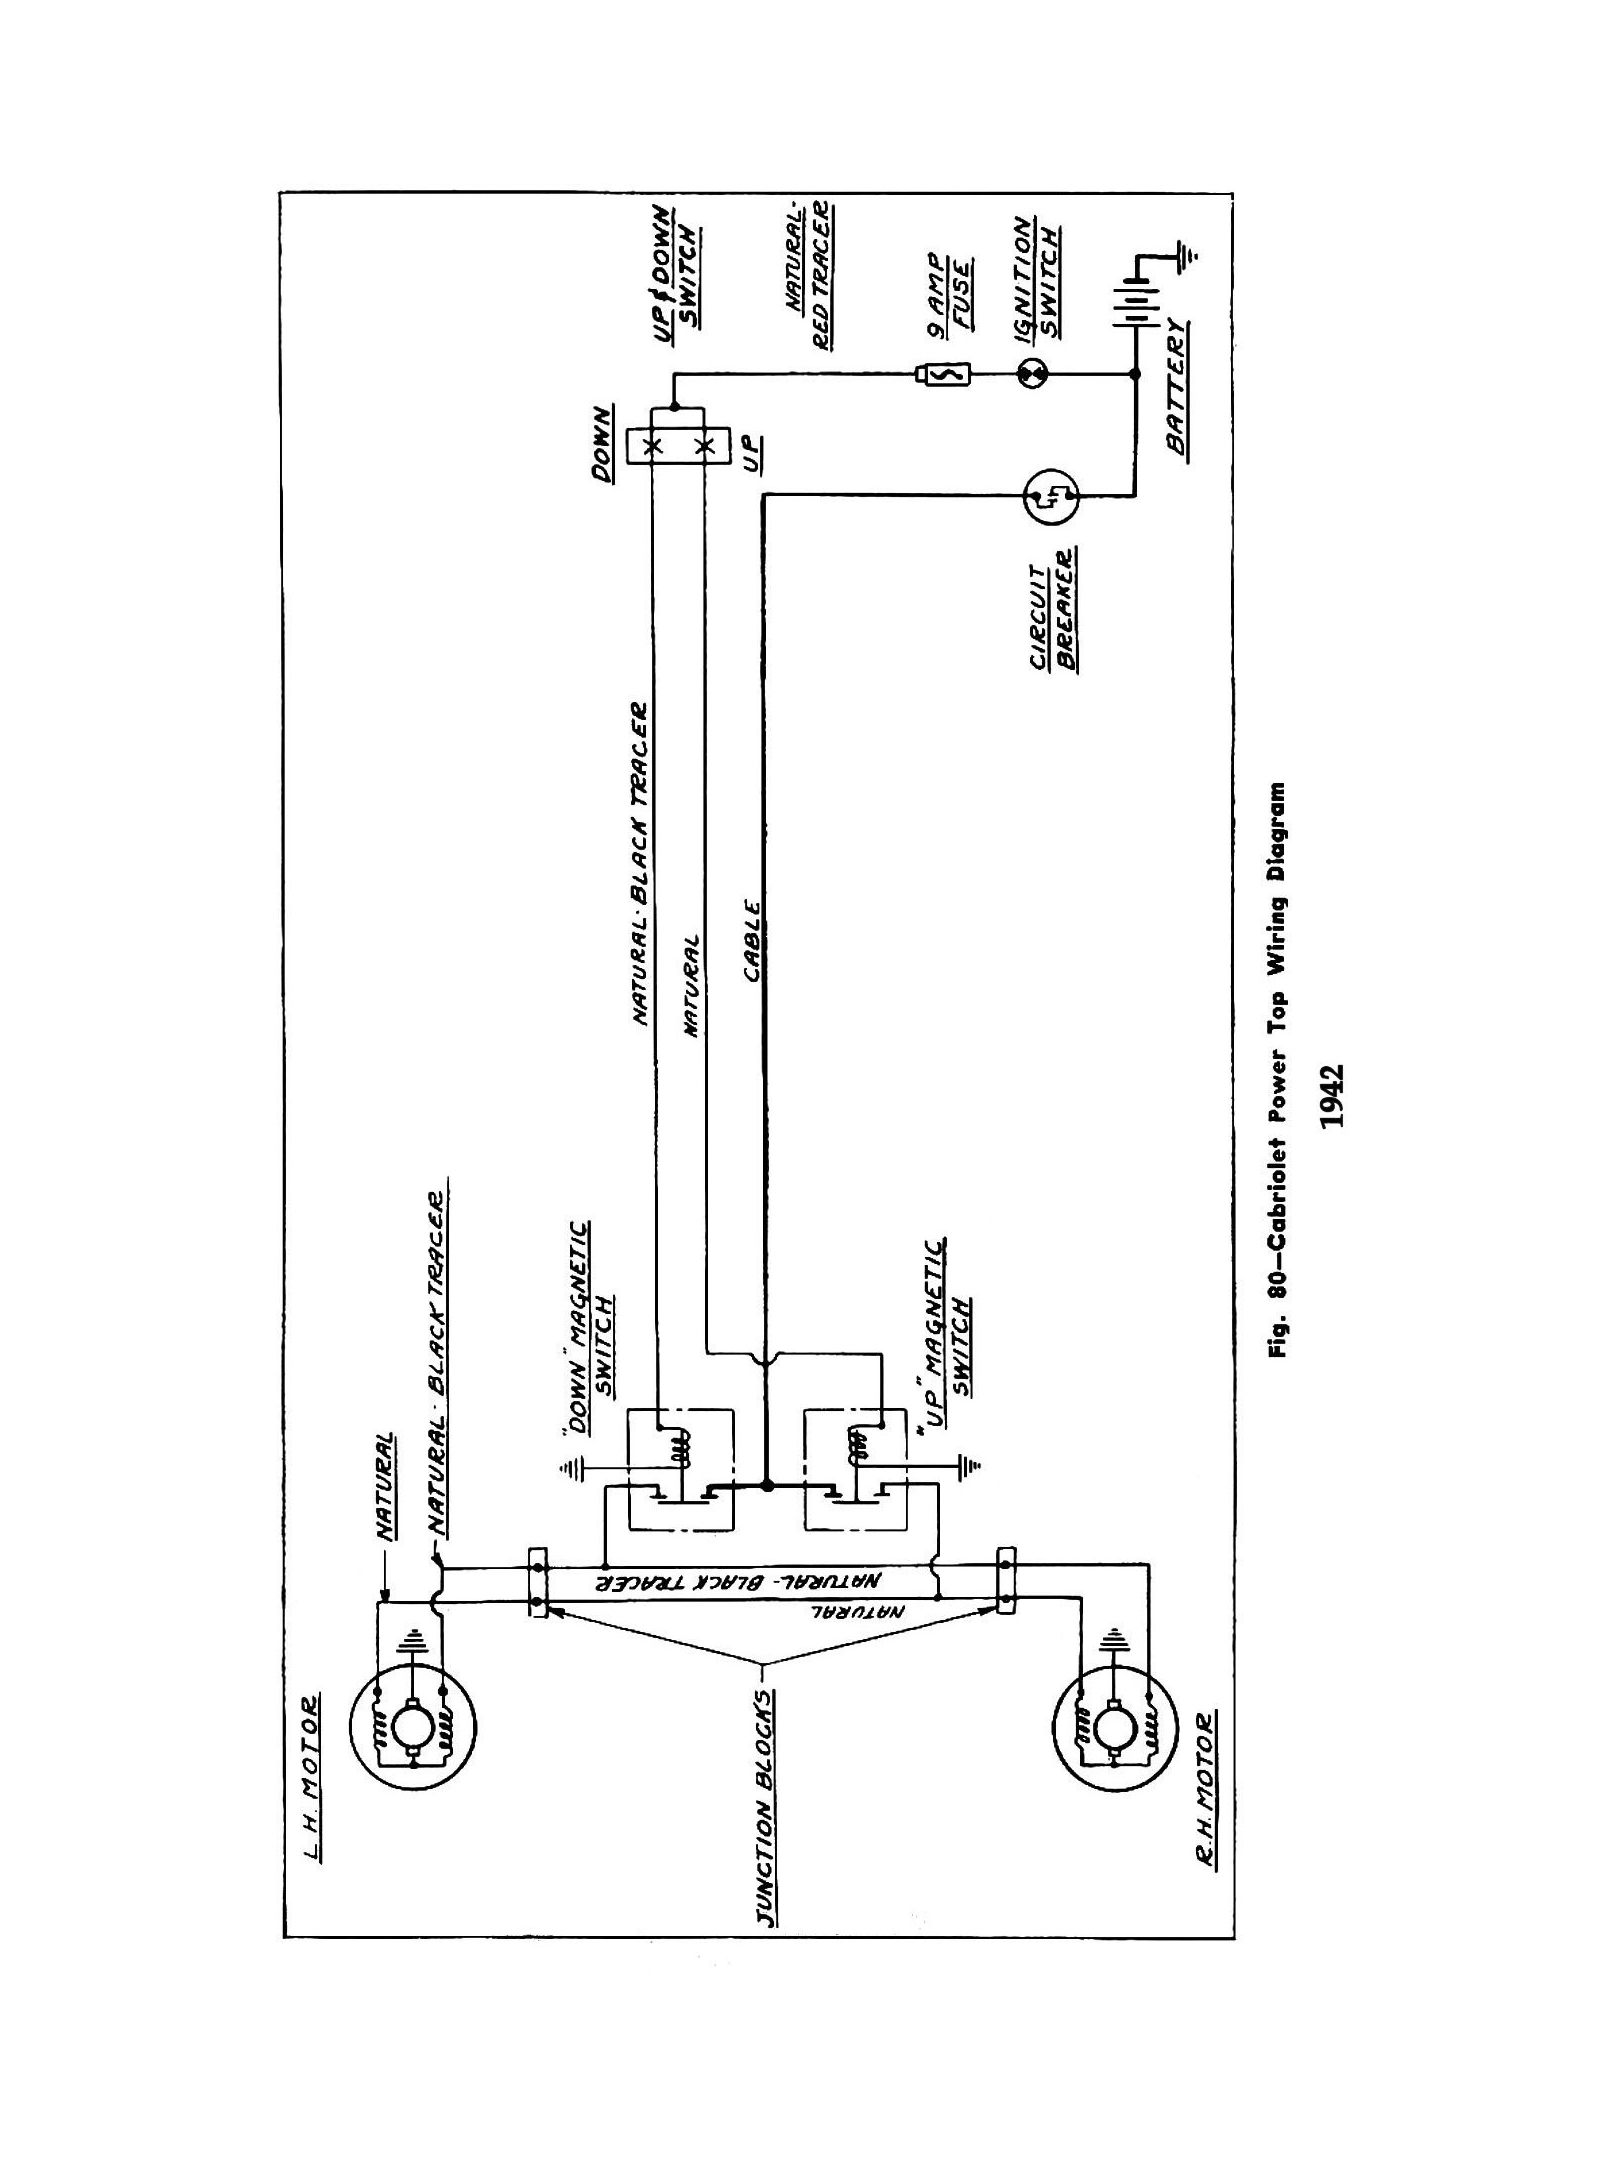 1939 Chrysler Wiring Schematics Diagram Strategy Design Plan 2001 Sebring Radio Schematic Chevy Diagrams Rh Oldcarmanualproject Com